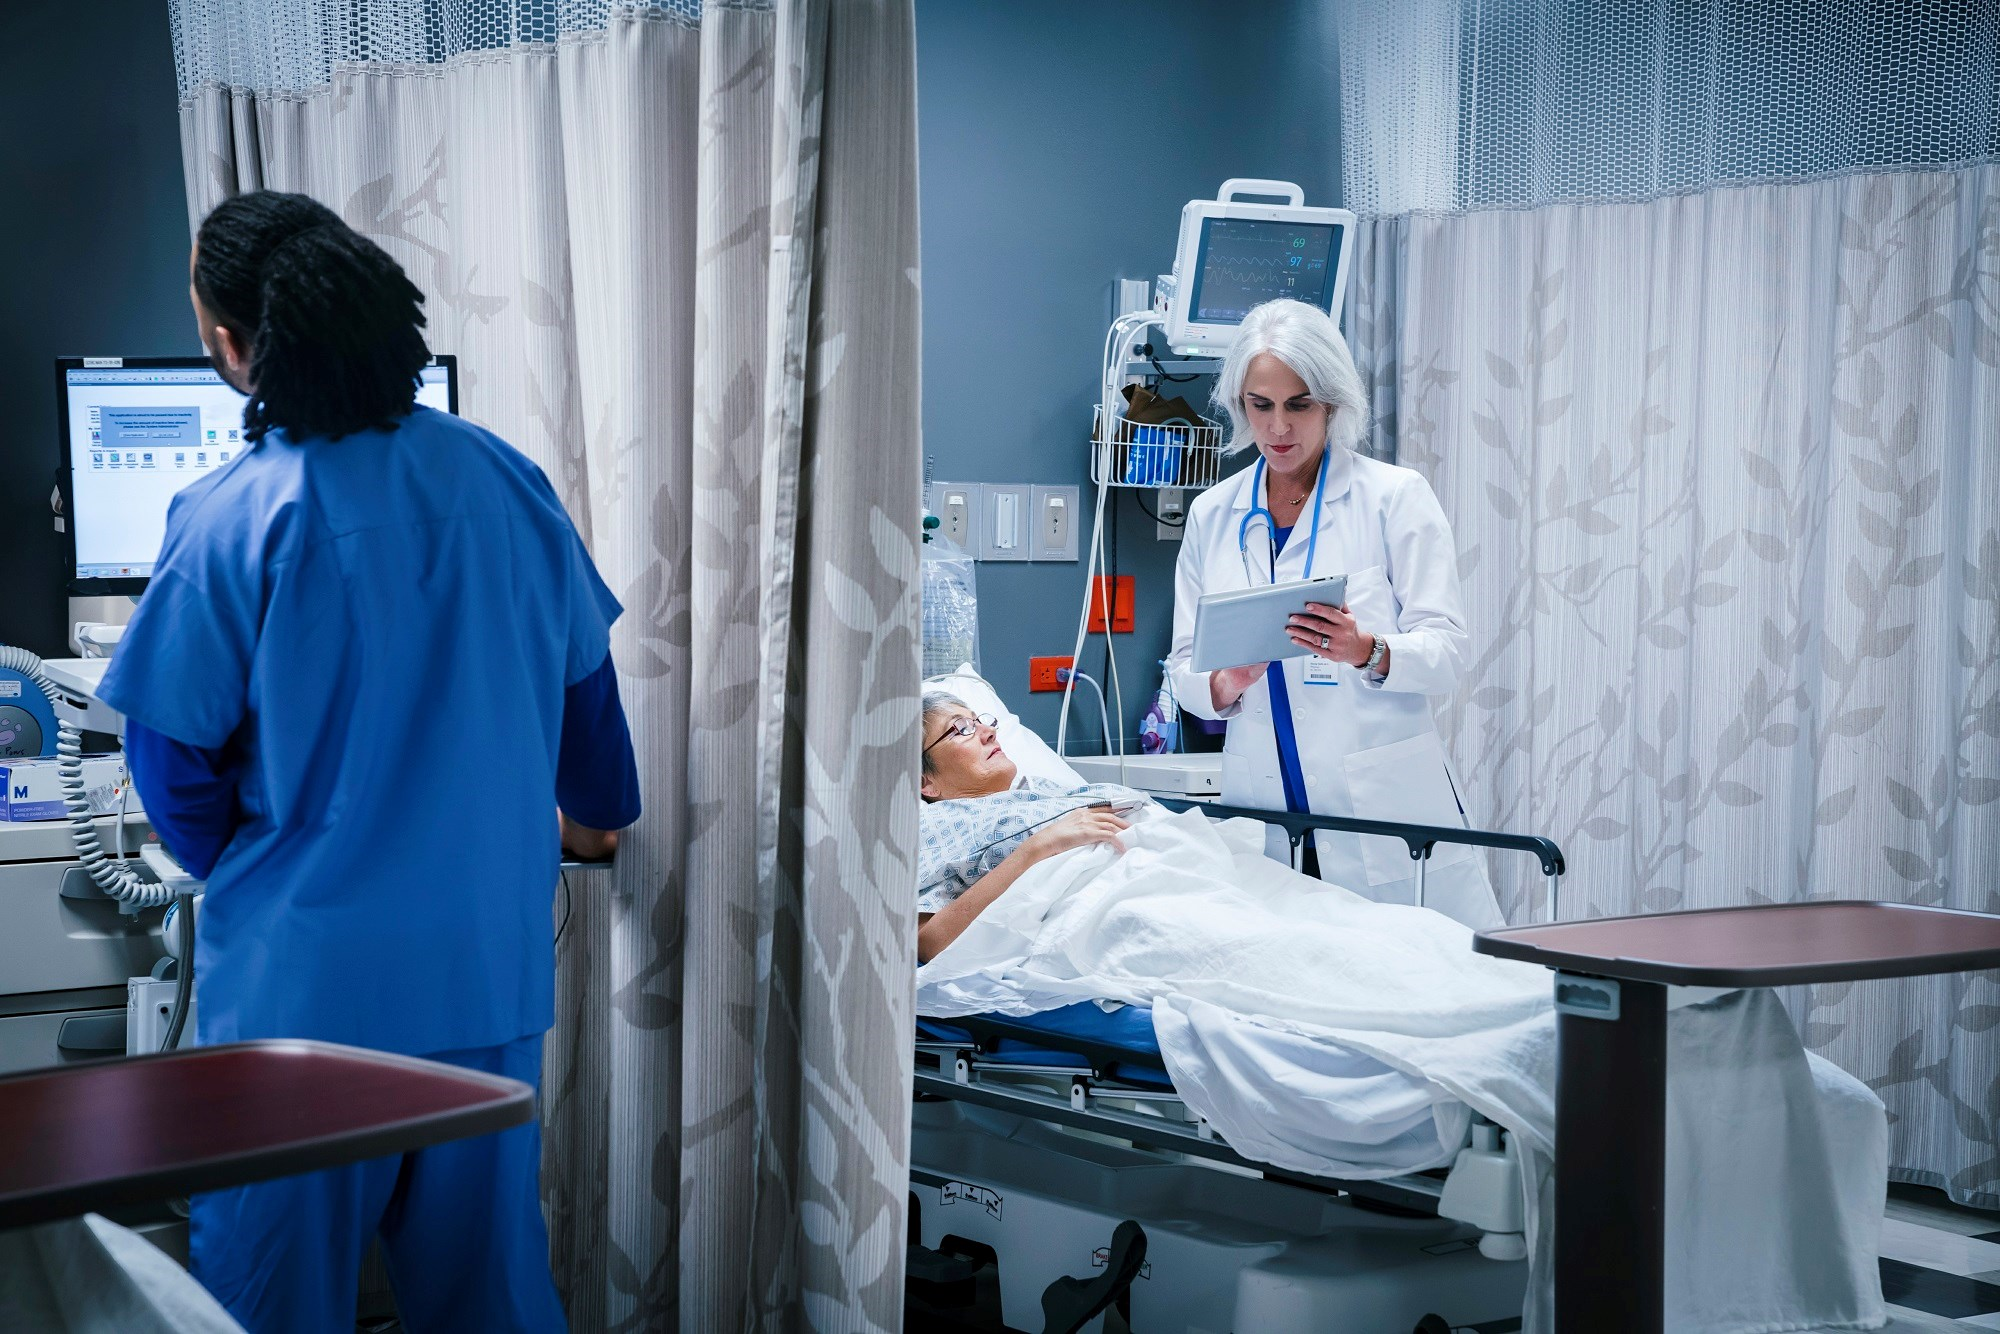 Patients with RA who were hospitalized for stroke did not have an increased risk for in-hospital mortality, pneumonia, UTIs, acute respiratory failure, or the use of mechanical ventilation.